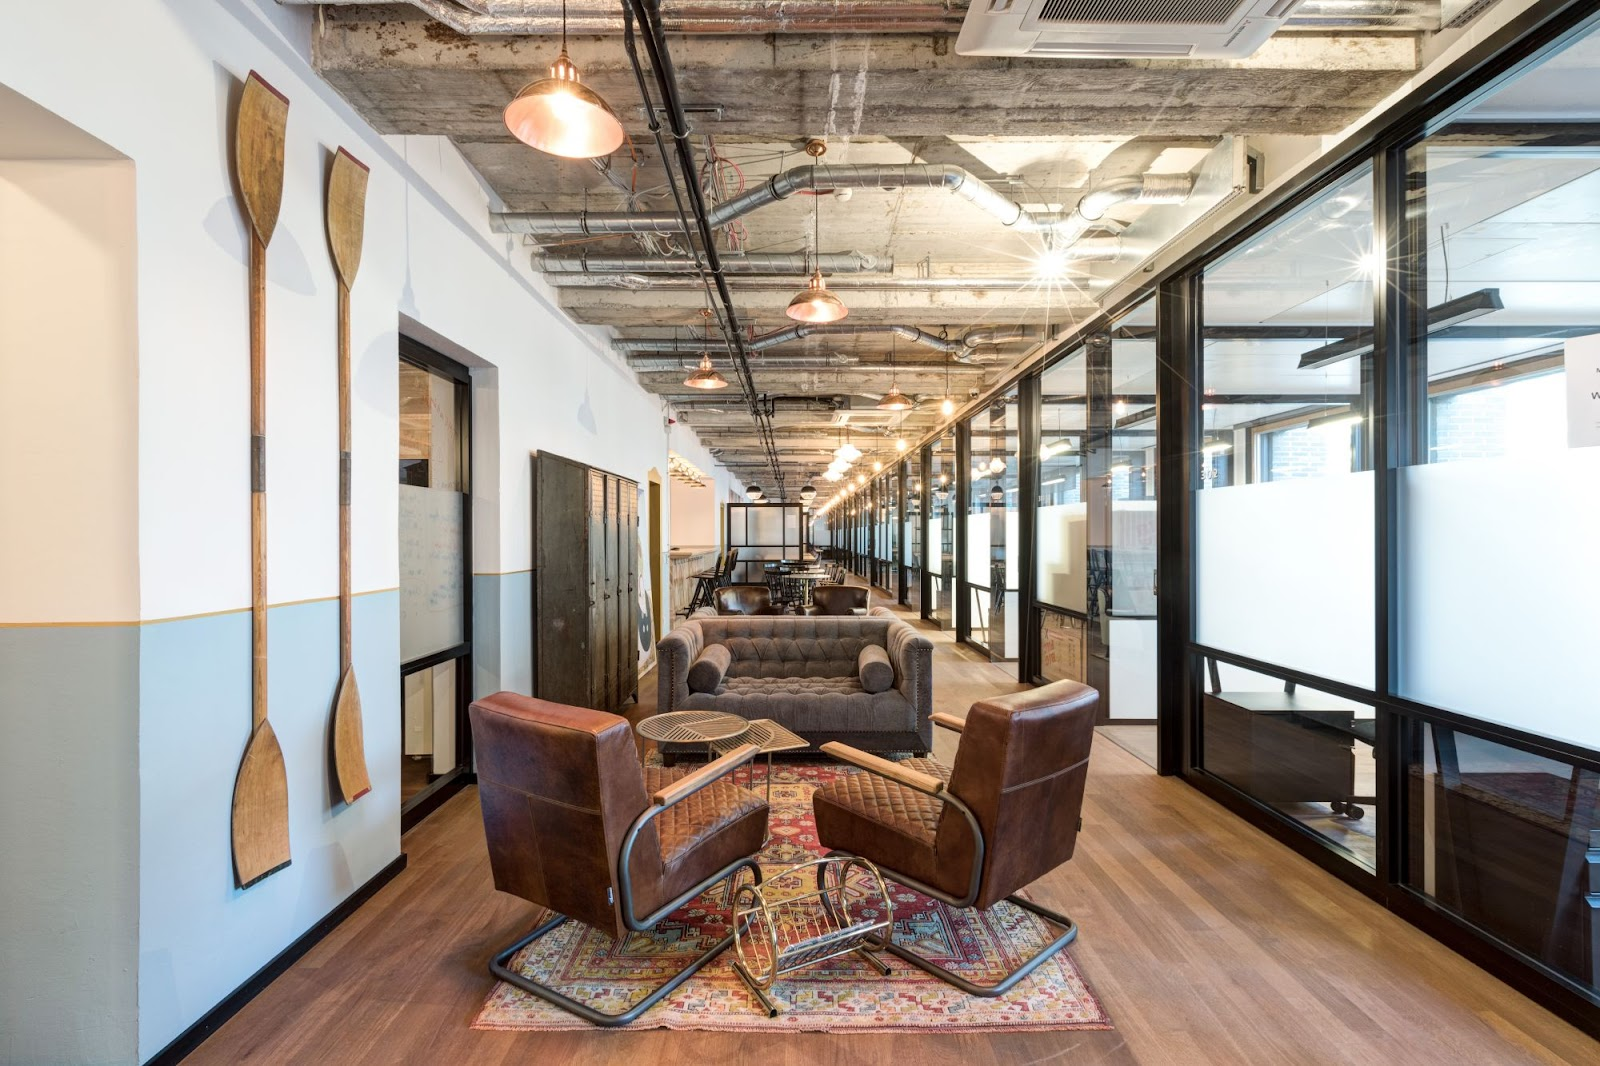 Coworking Space Munich: 9 Best Spaces with Pricing, Amenities & Location [2021] 23